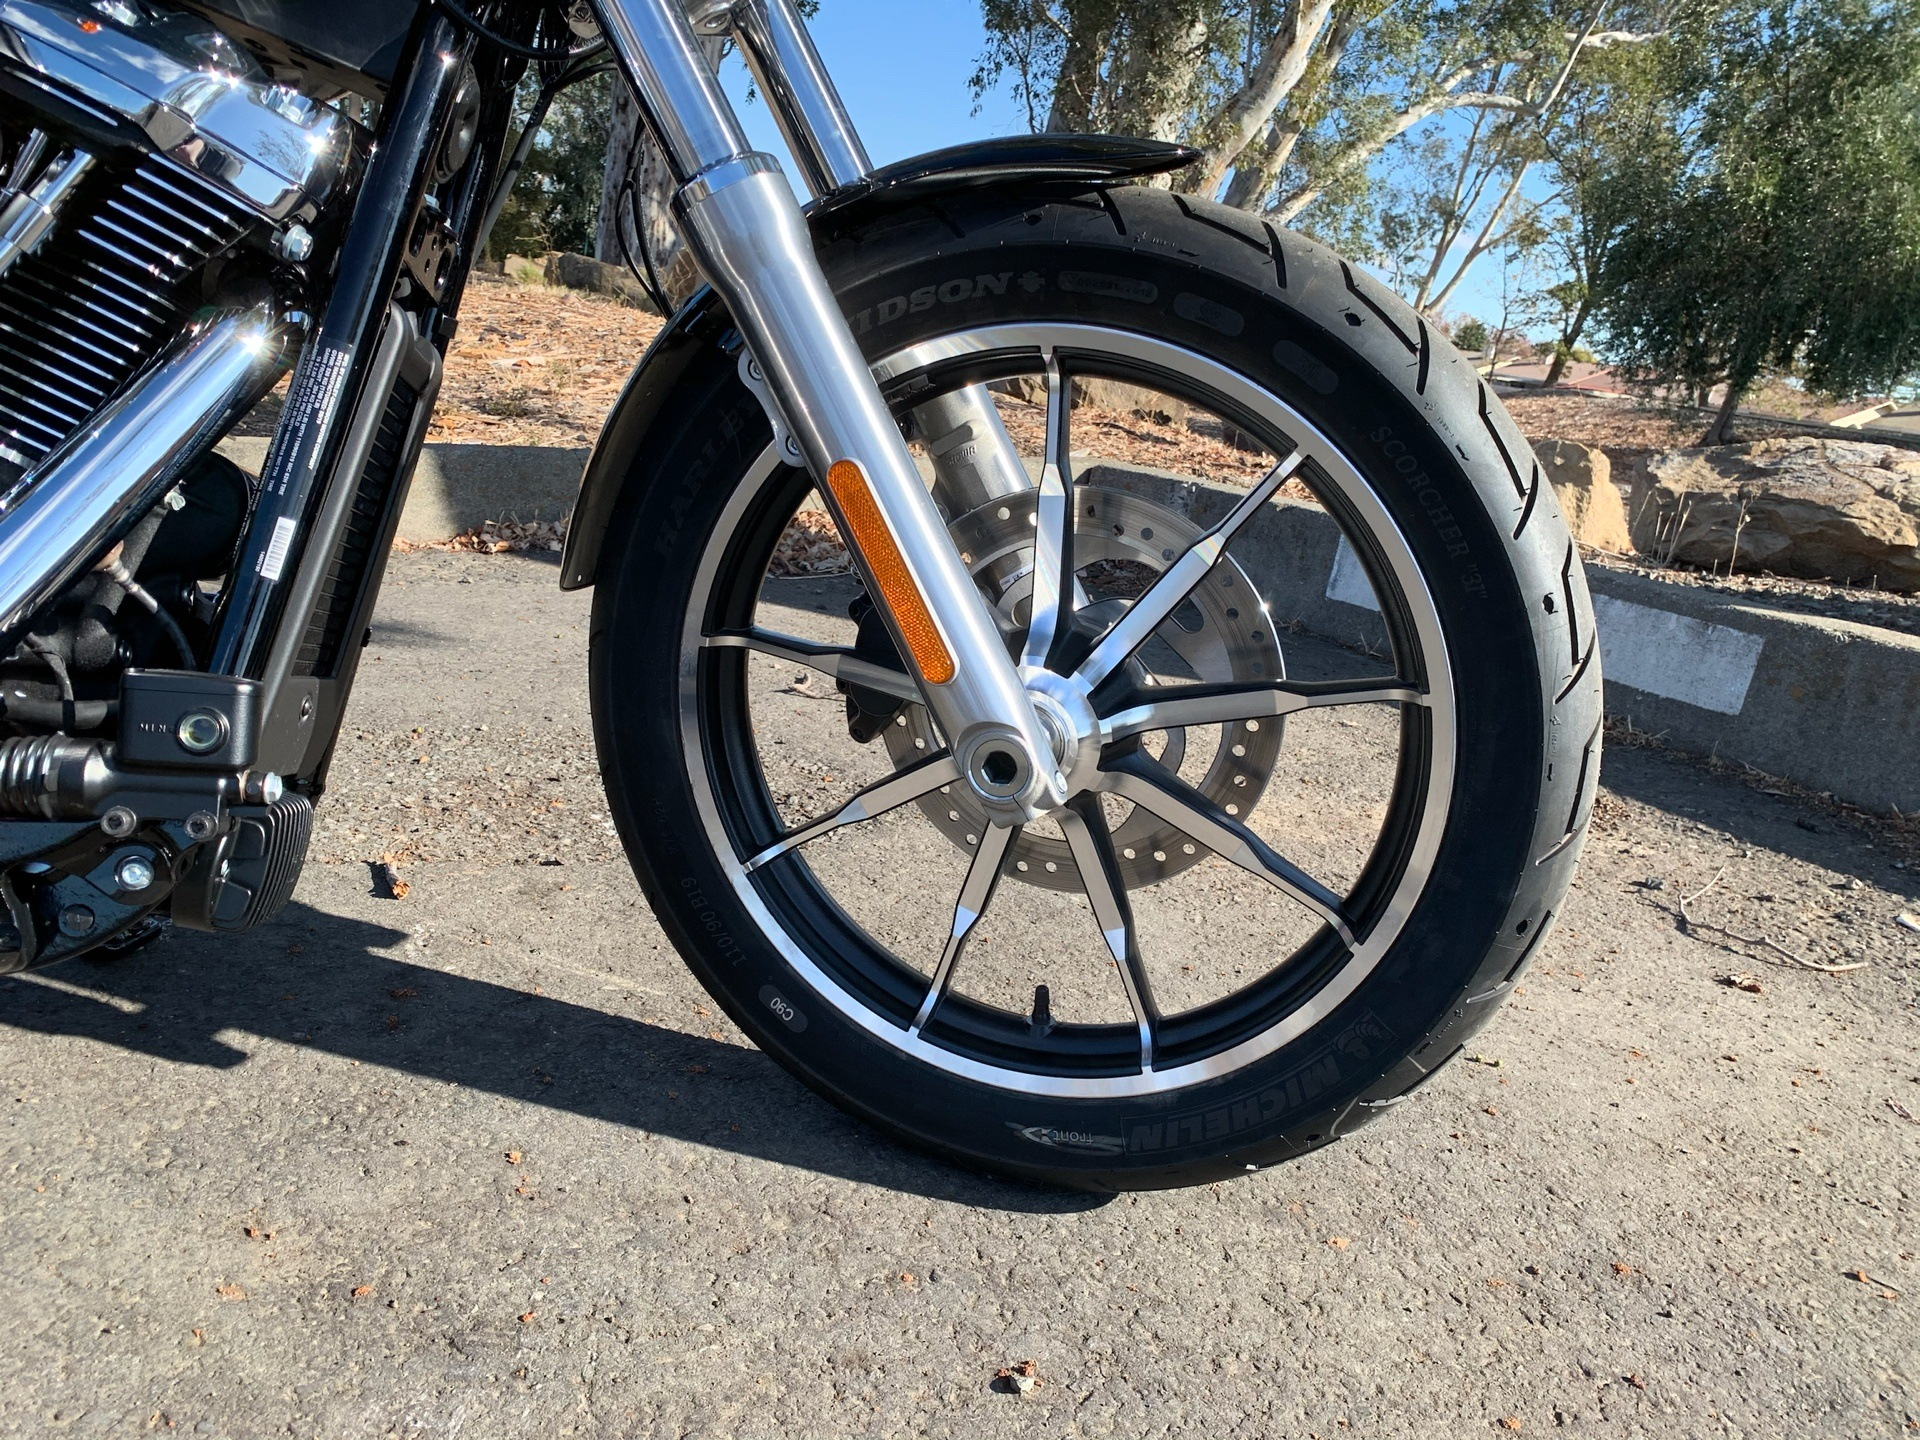 2020 Harley-Davidson Low Rider® in Vacaville, California - Photo 2